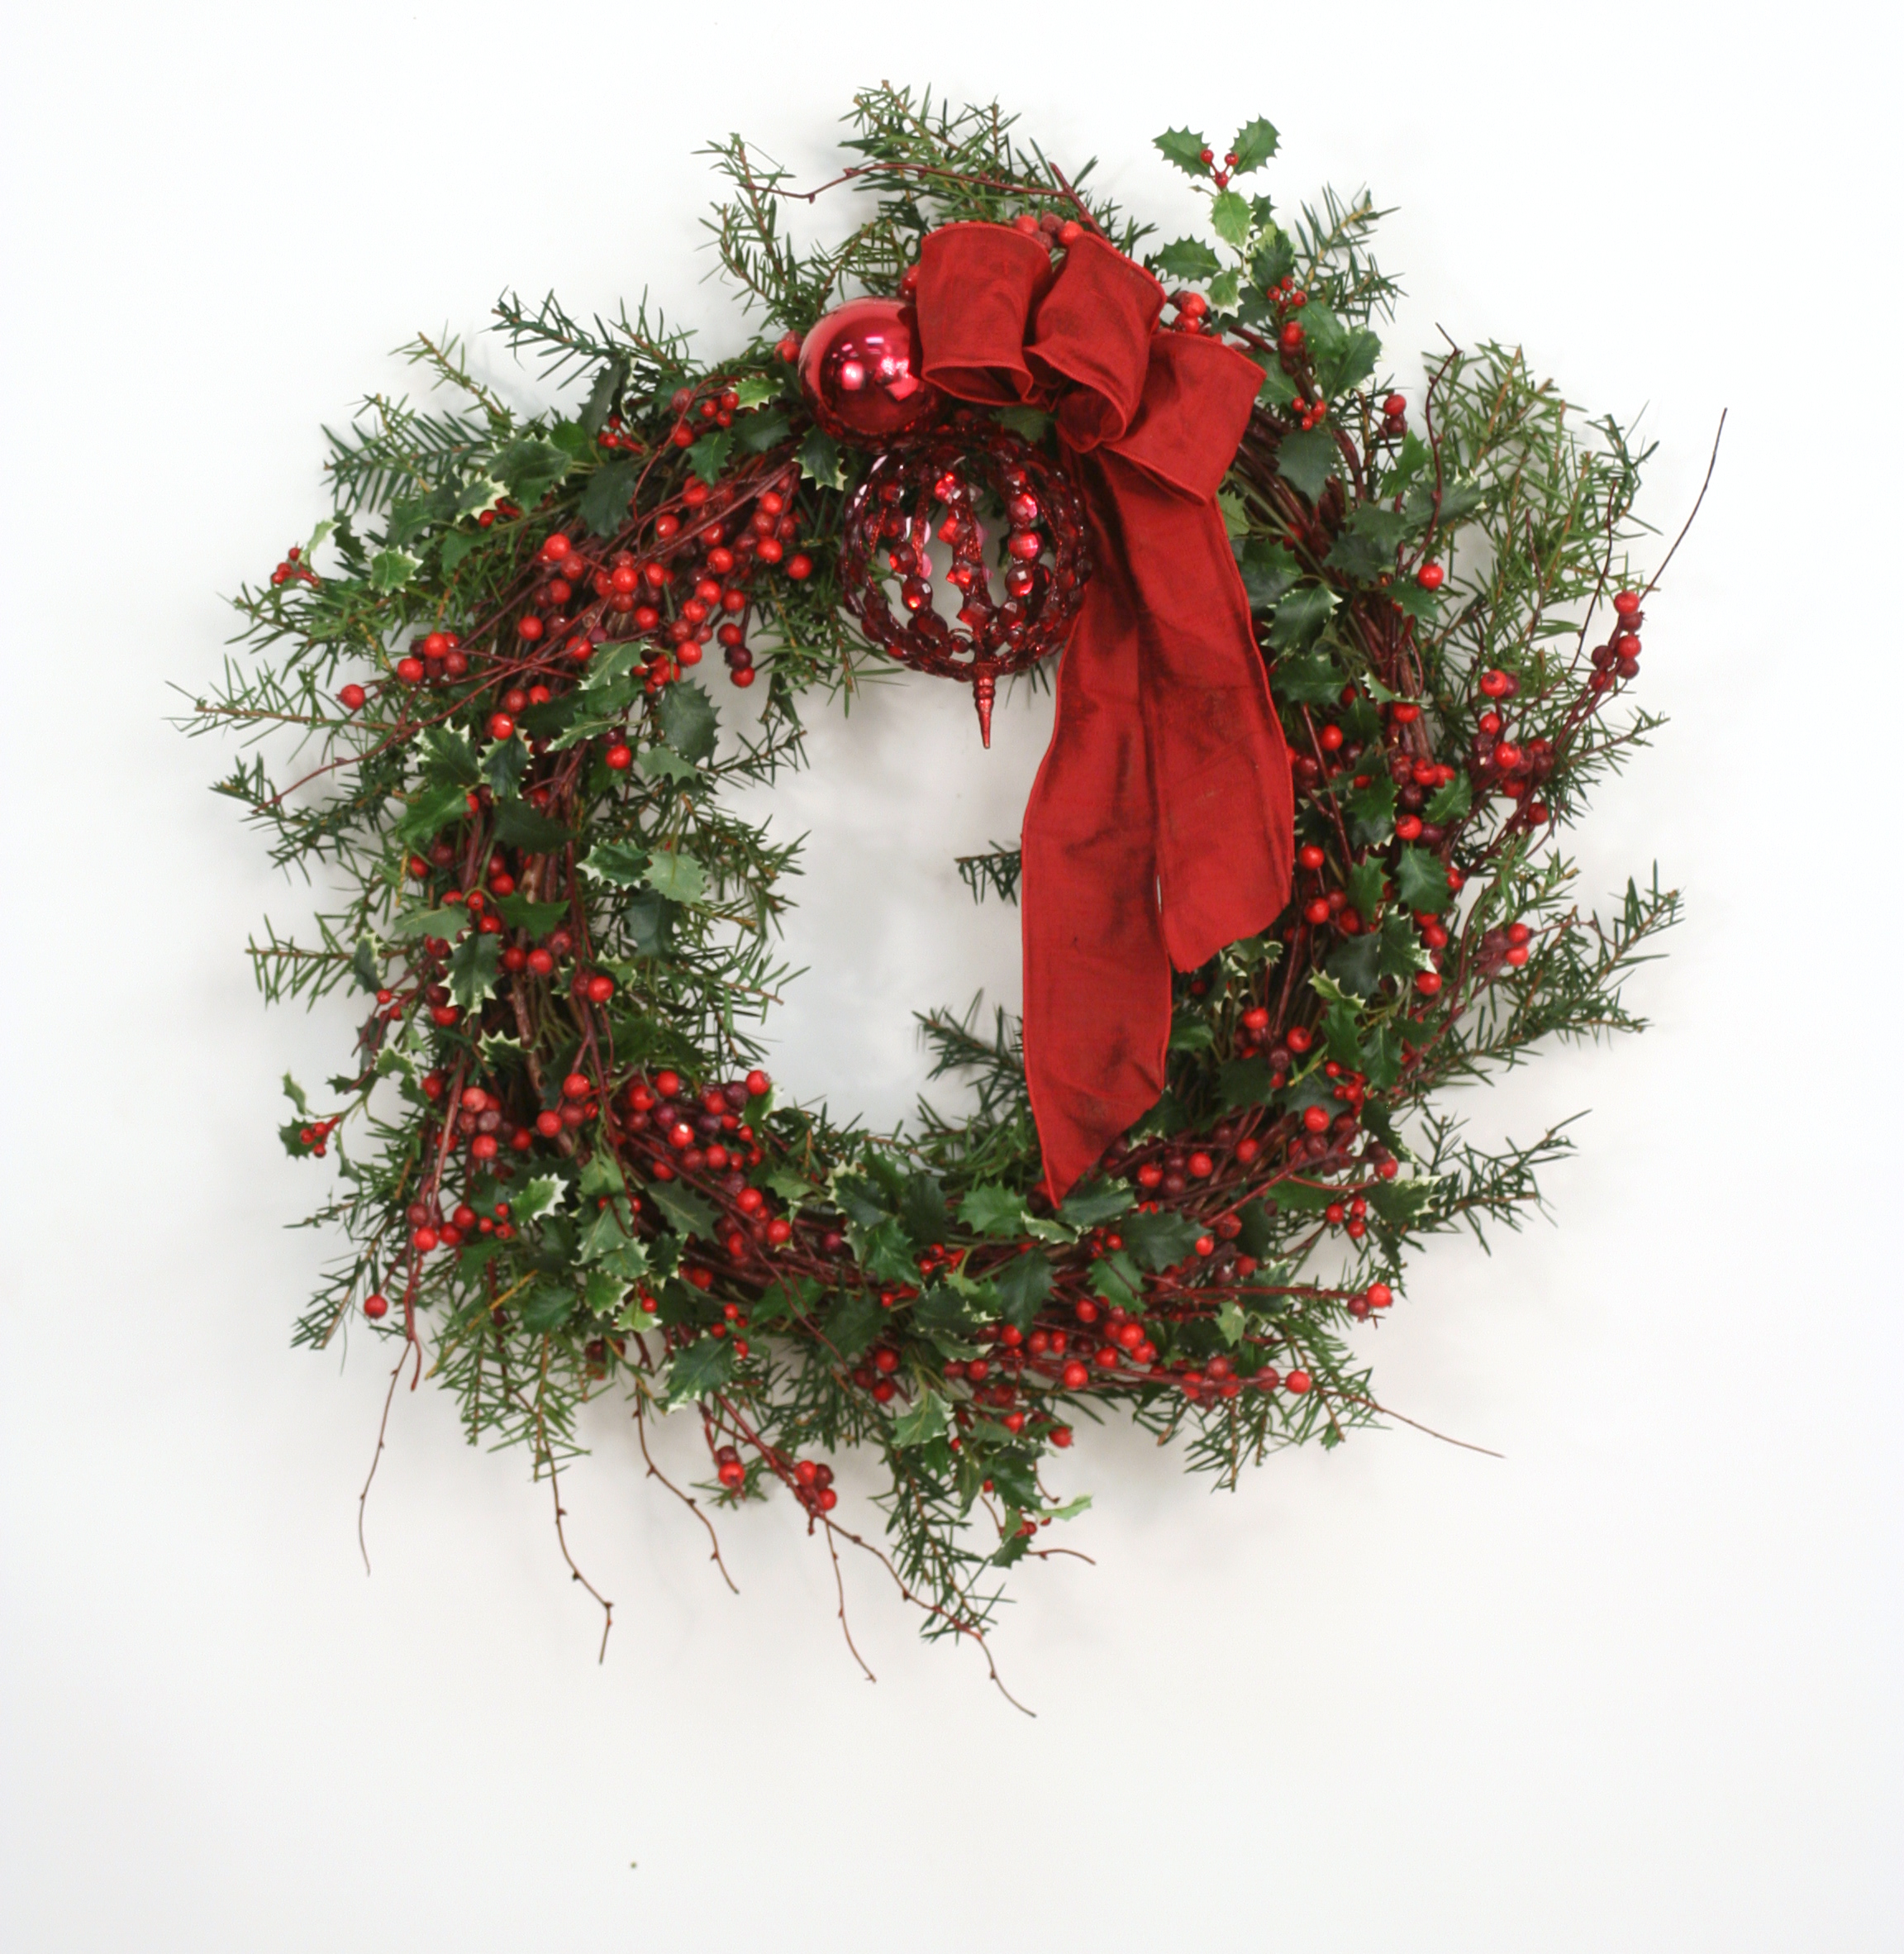 Down Home - Holly Berry Wreath with Red Ornaments